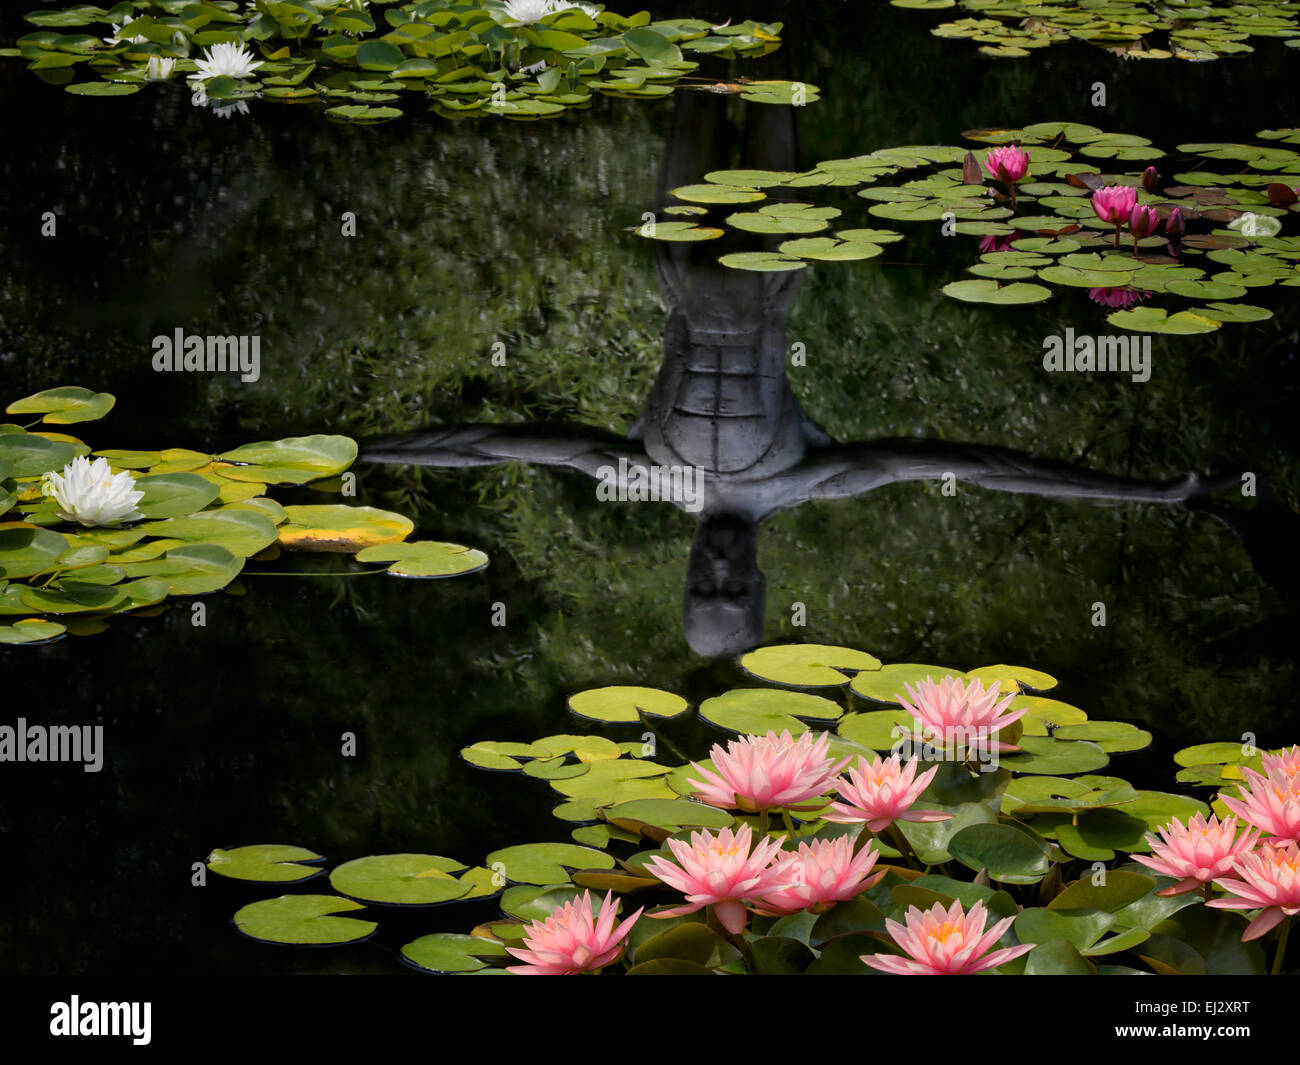 Waterlilies in pond with reflection of sculpture. Oregon - Stock Image